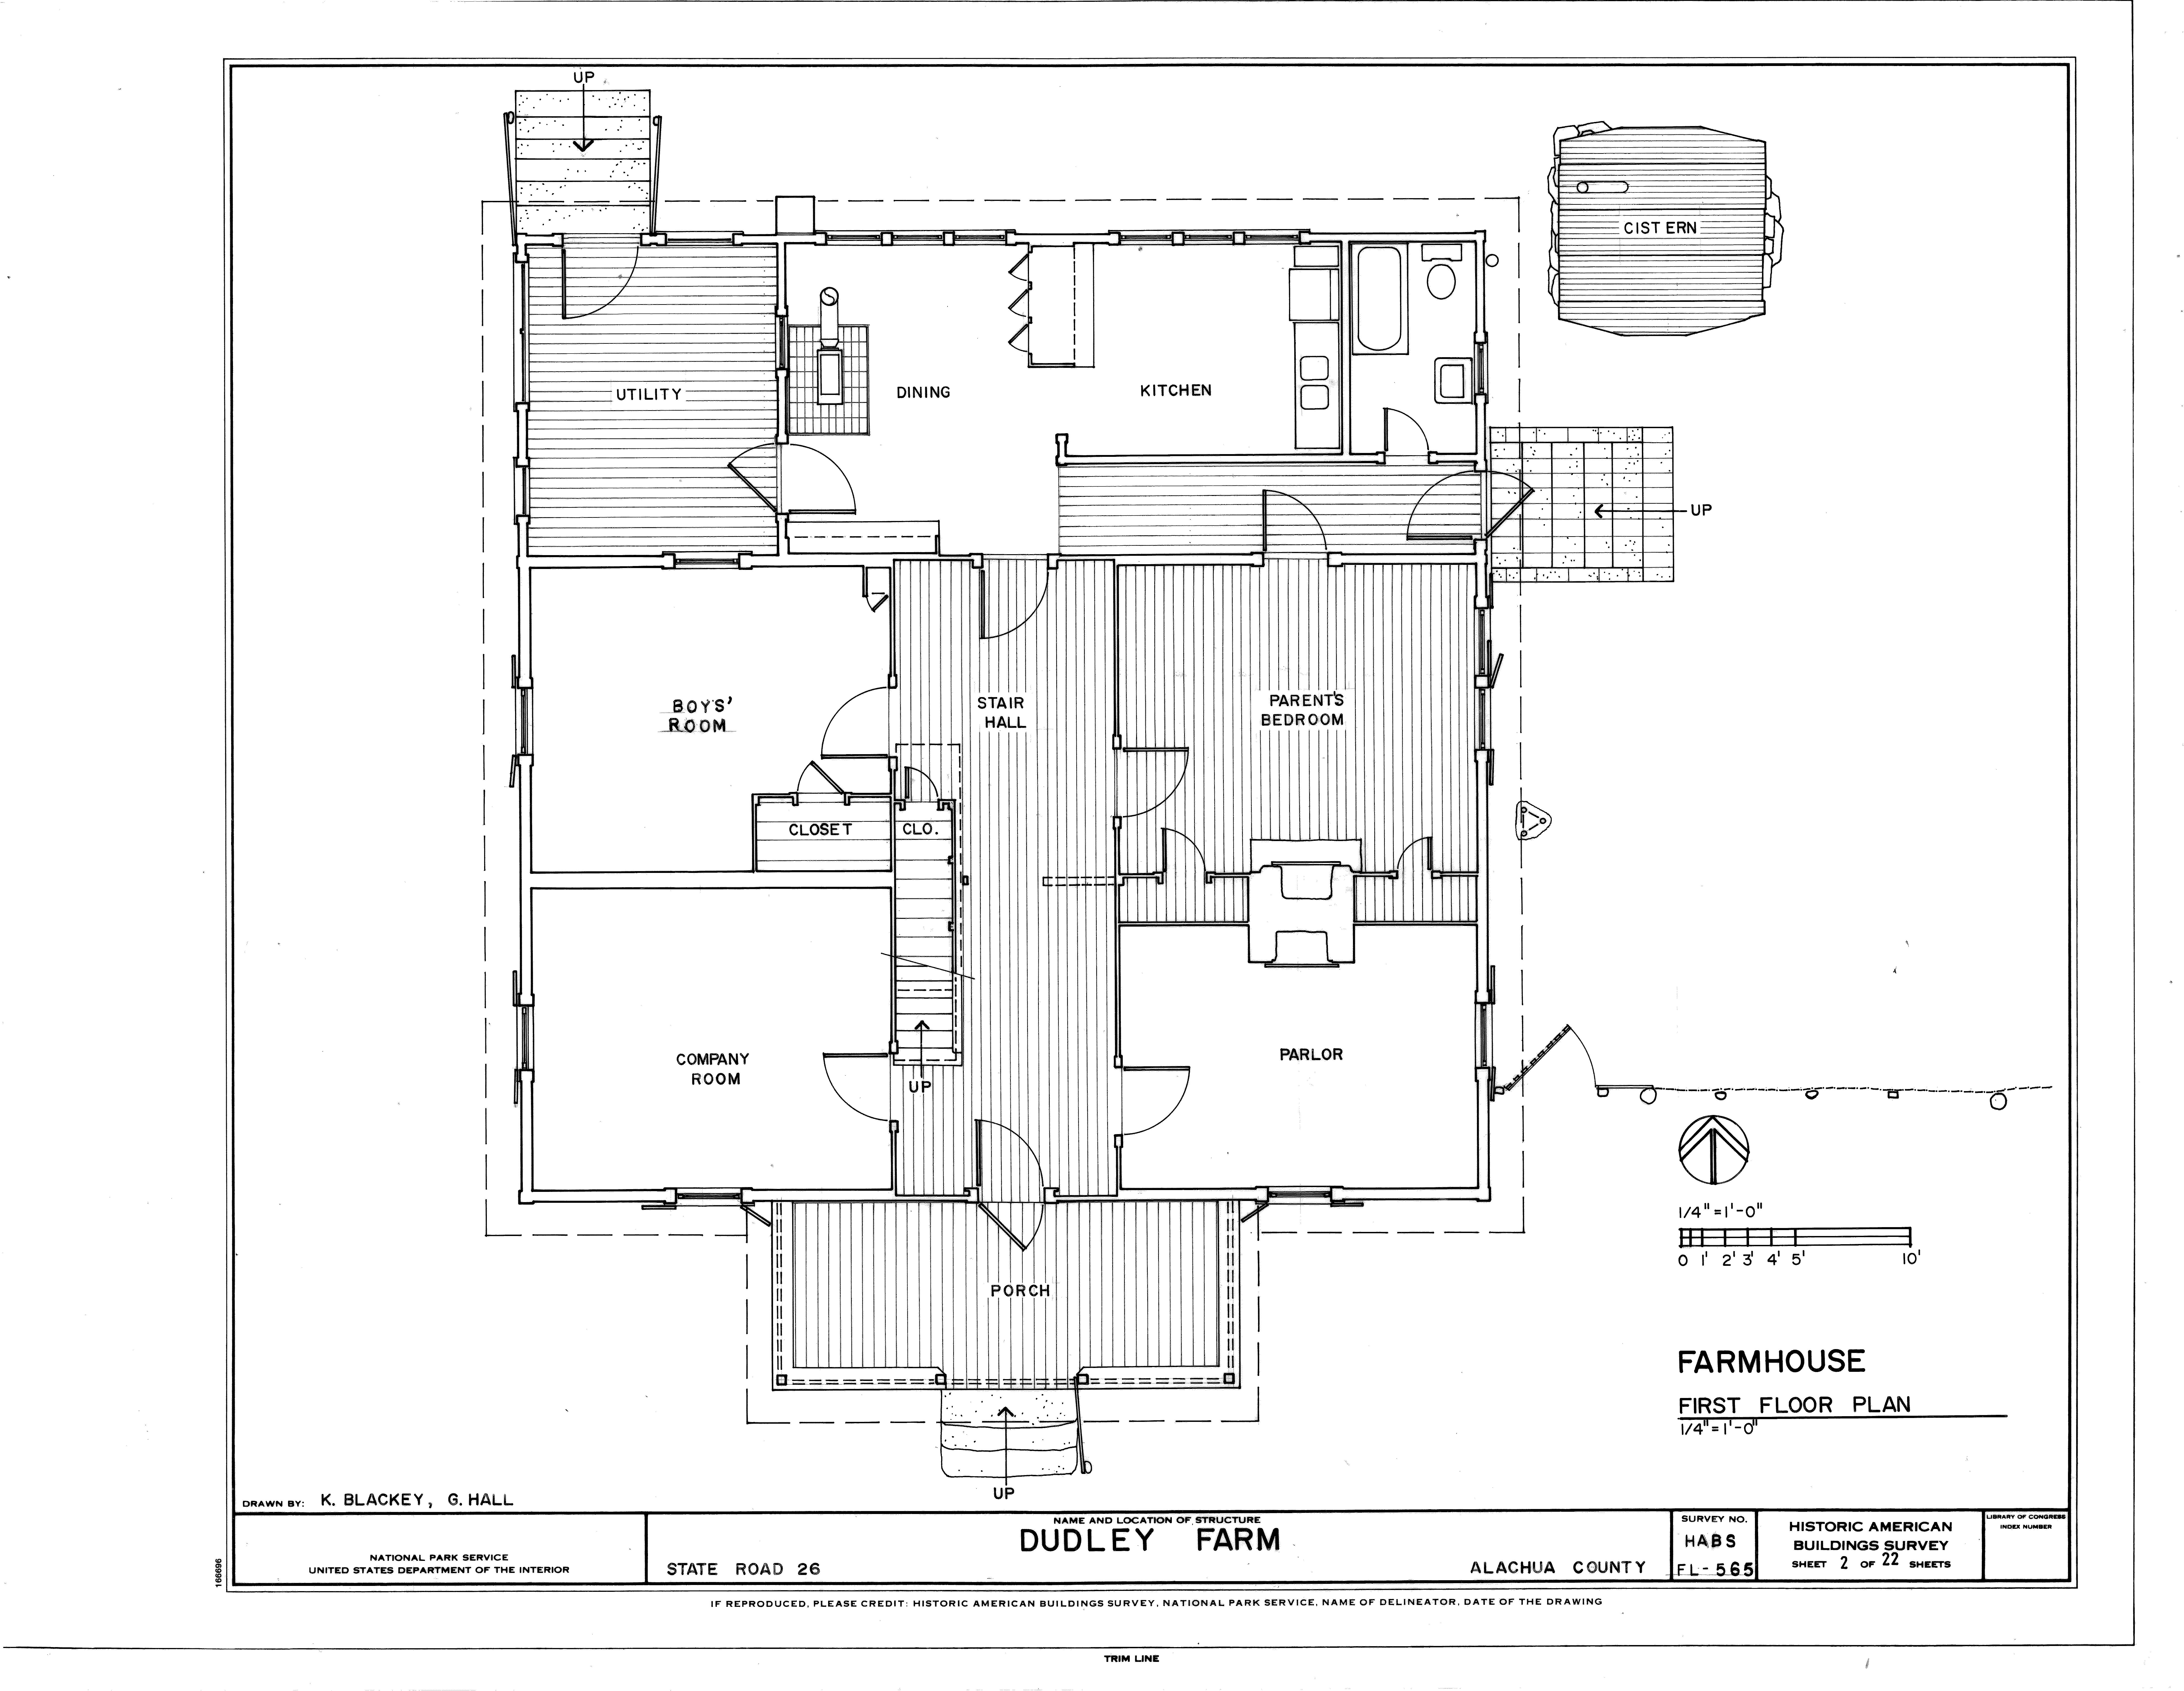 File farmhouse first floor plan dudley farm farmhouse Farmhouse plans